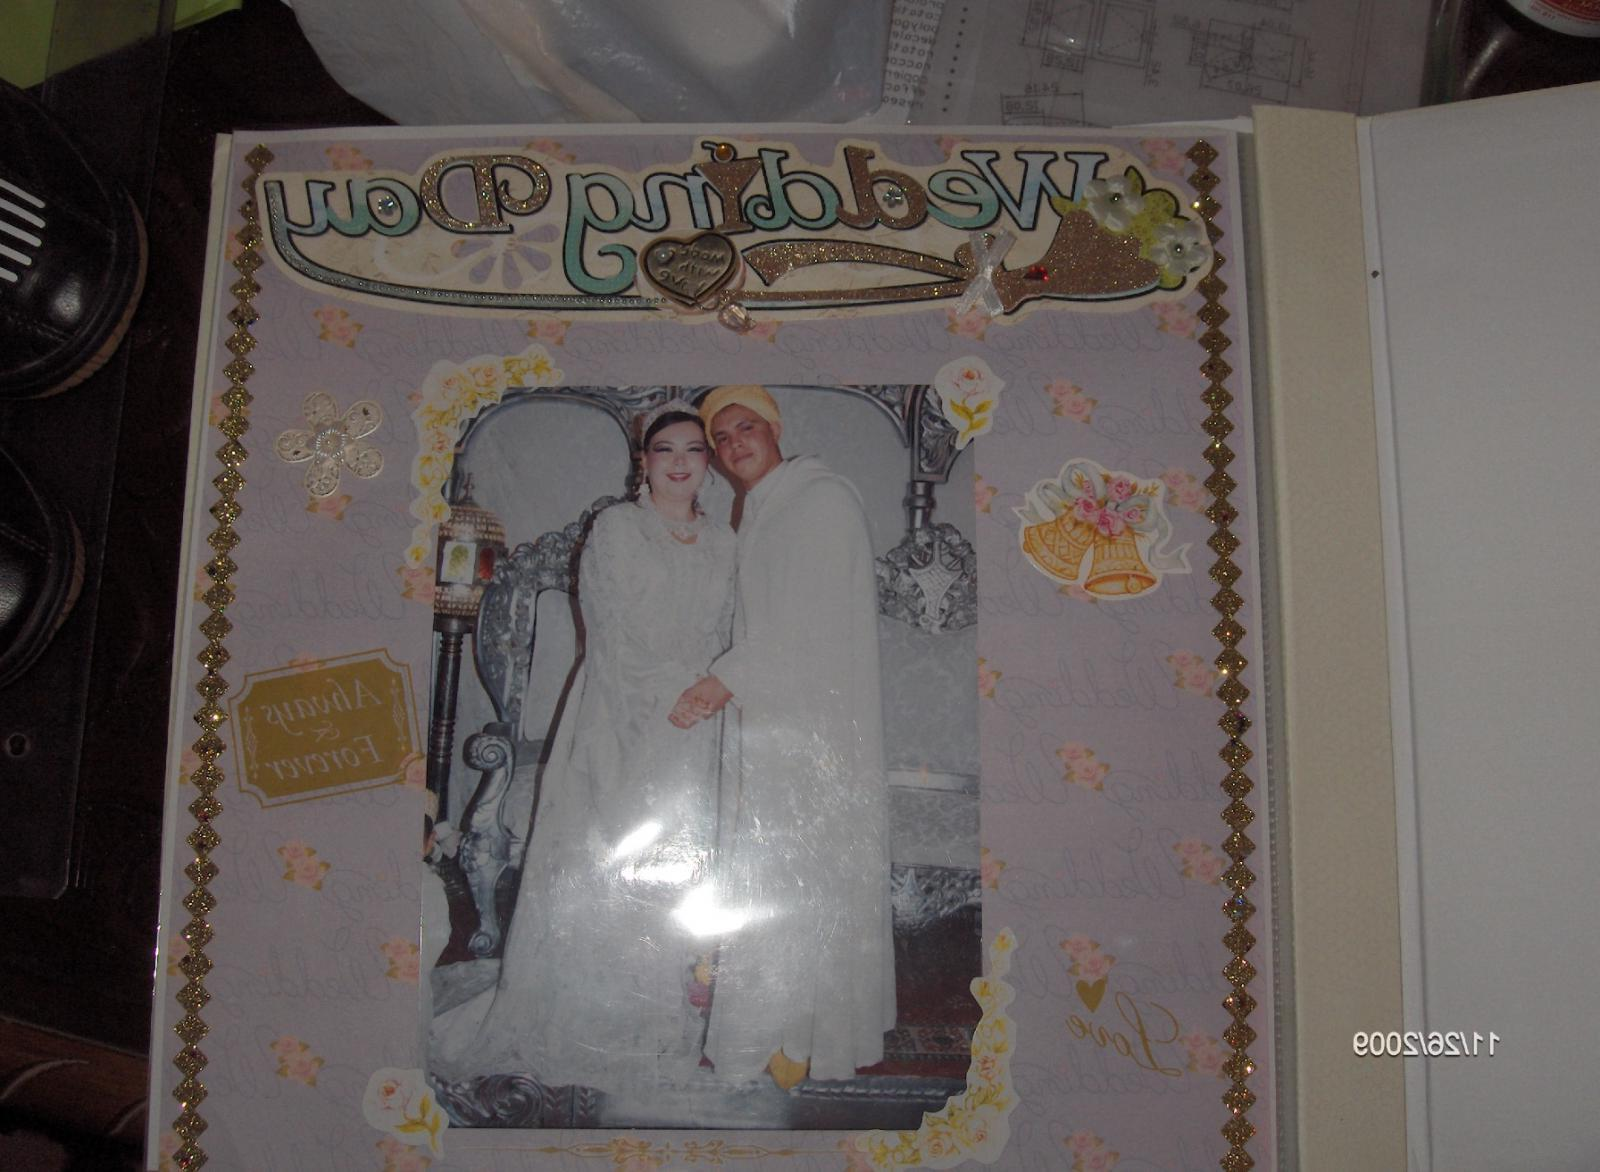 This is a pic of my wedding scrapbook, our wedding took place in 2008 in